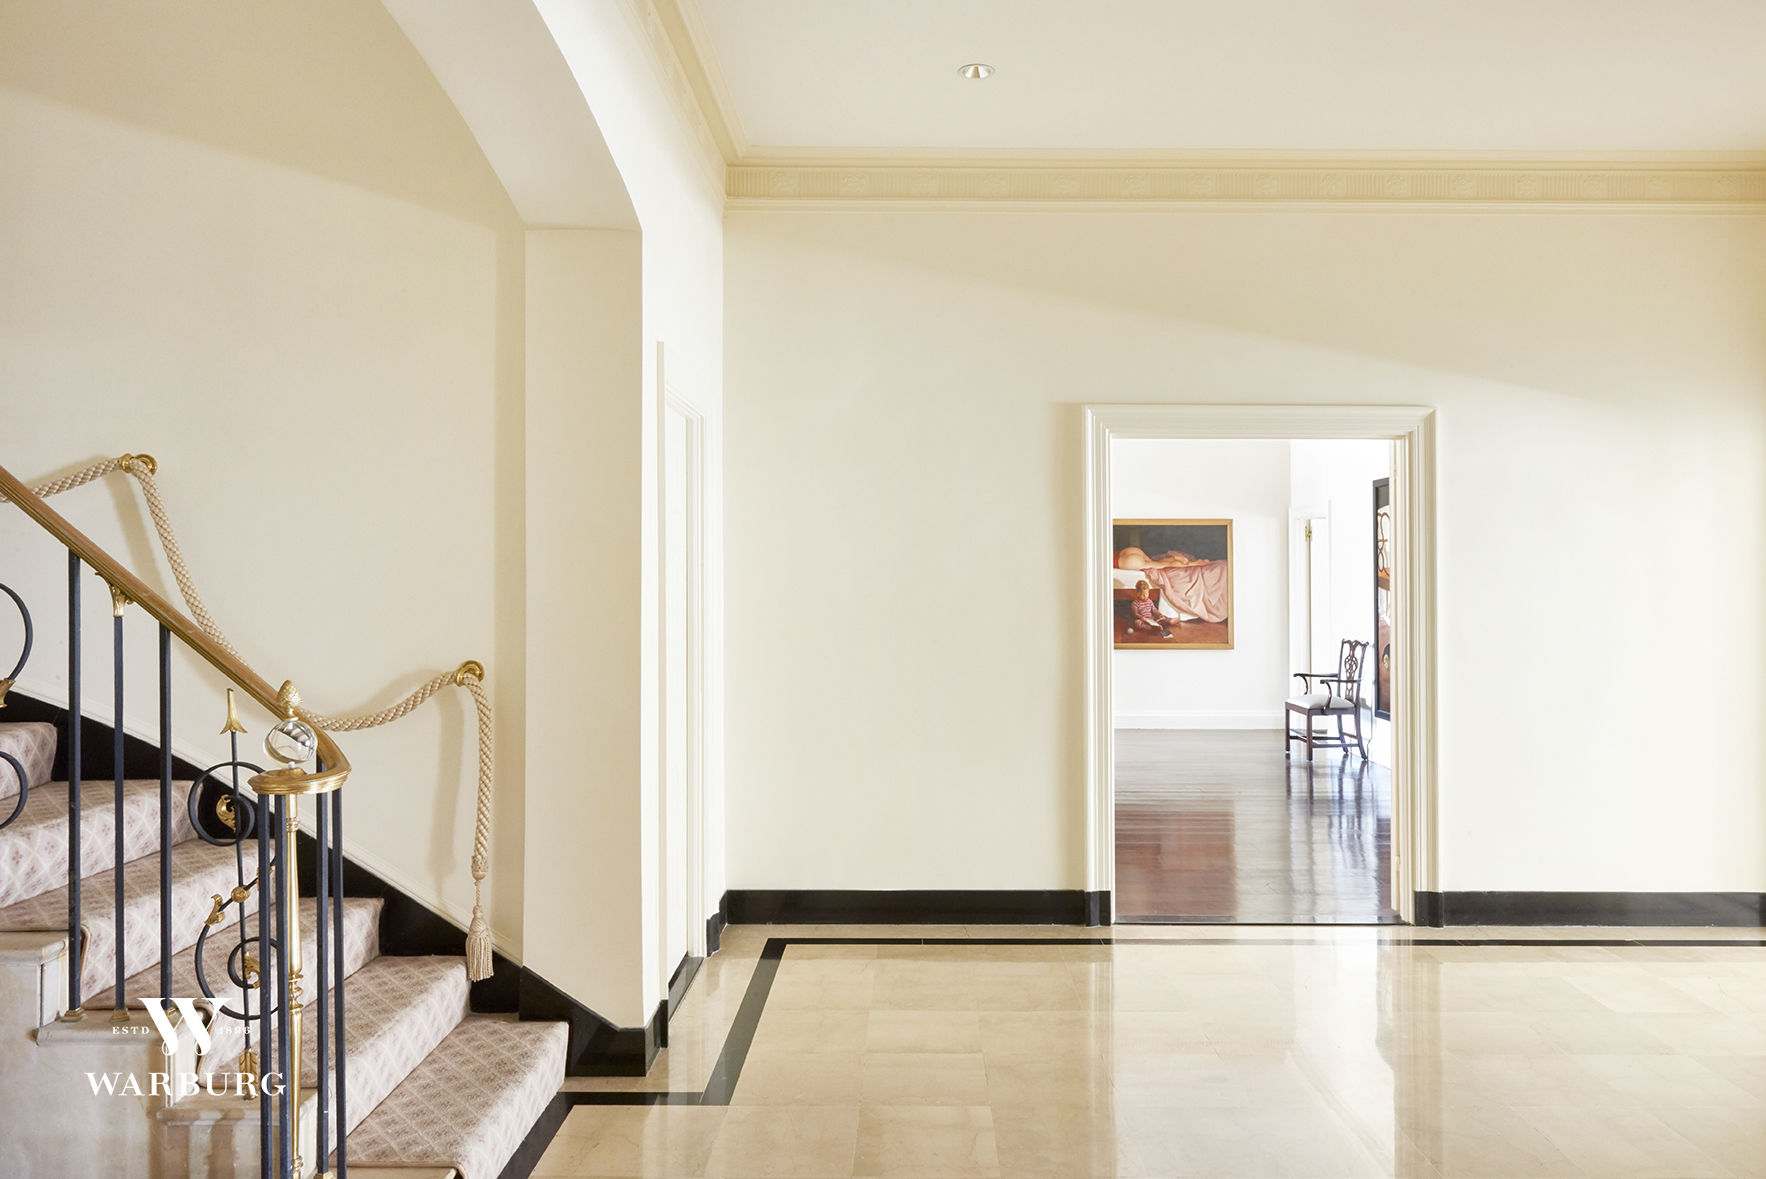 740 Park Avenue, Apt 8/9A Photo 1 - WR-3098393